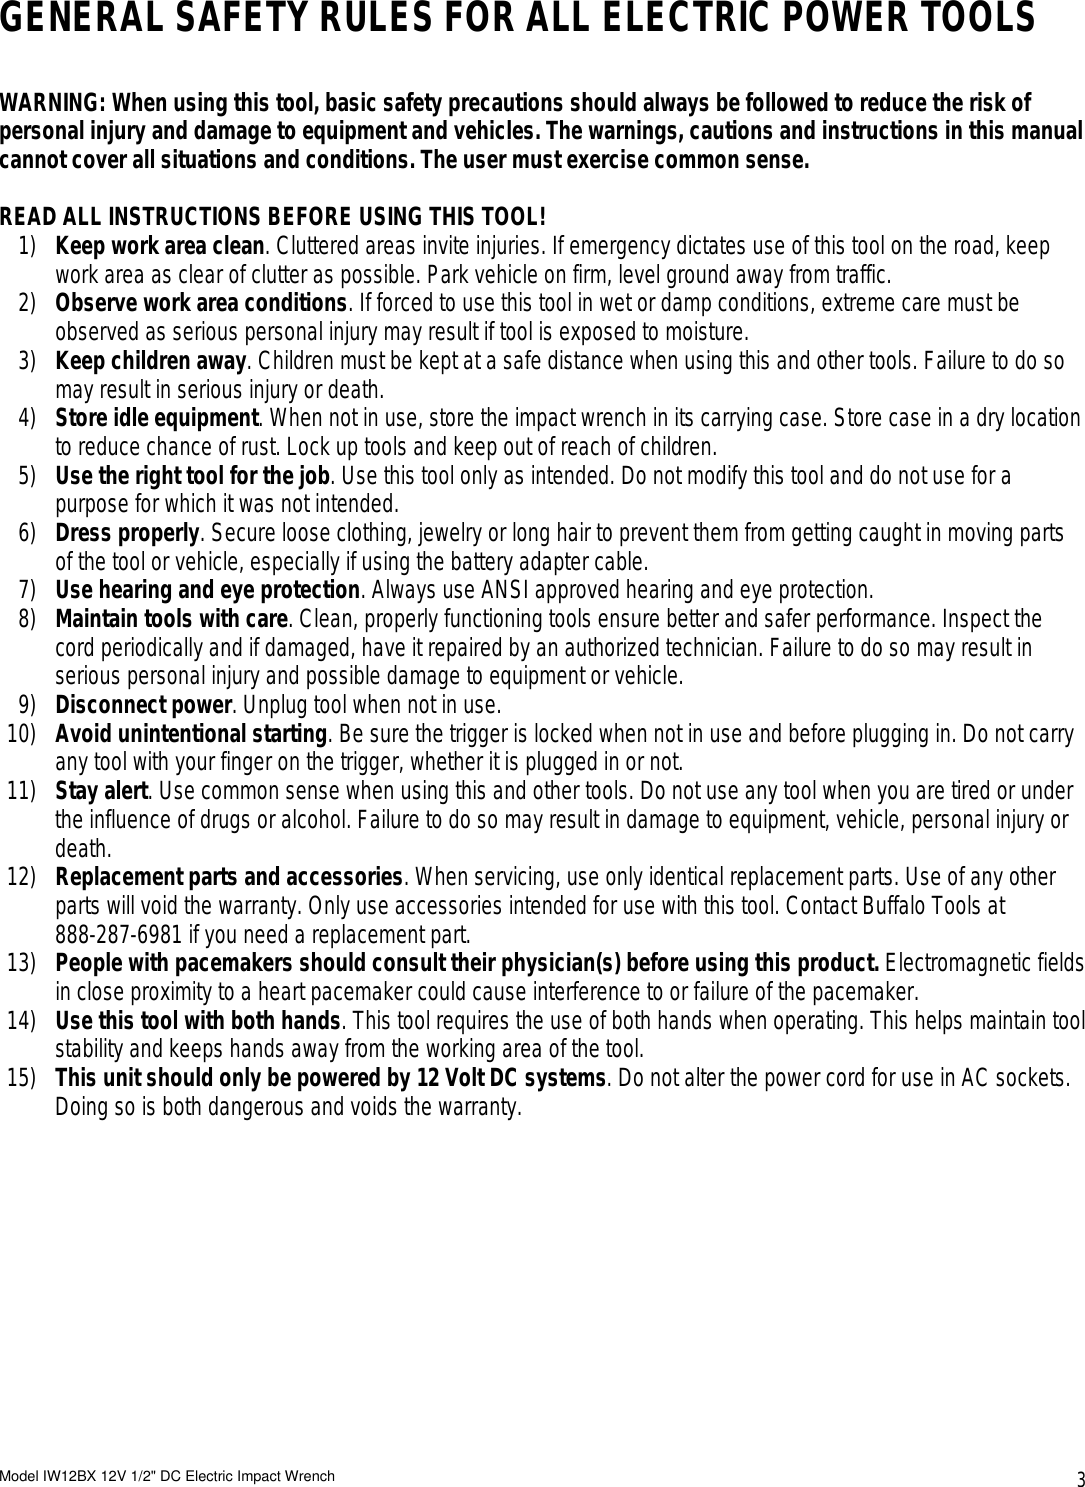 Buffalo tools iw12bx 12v users manual page 3 of buffalo tools buffalo tools iw12bx 12v users publicscrutiny Gallery